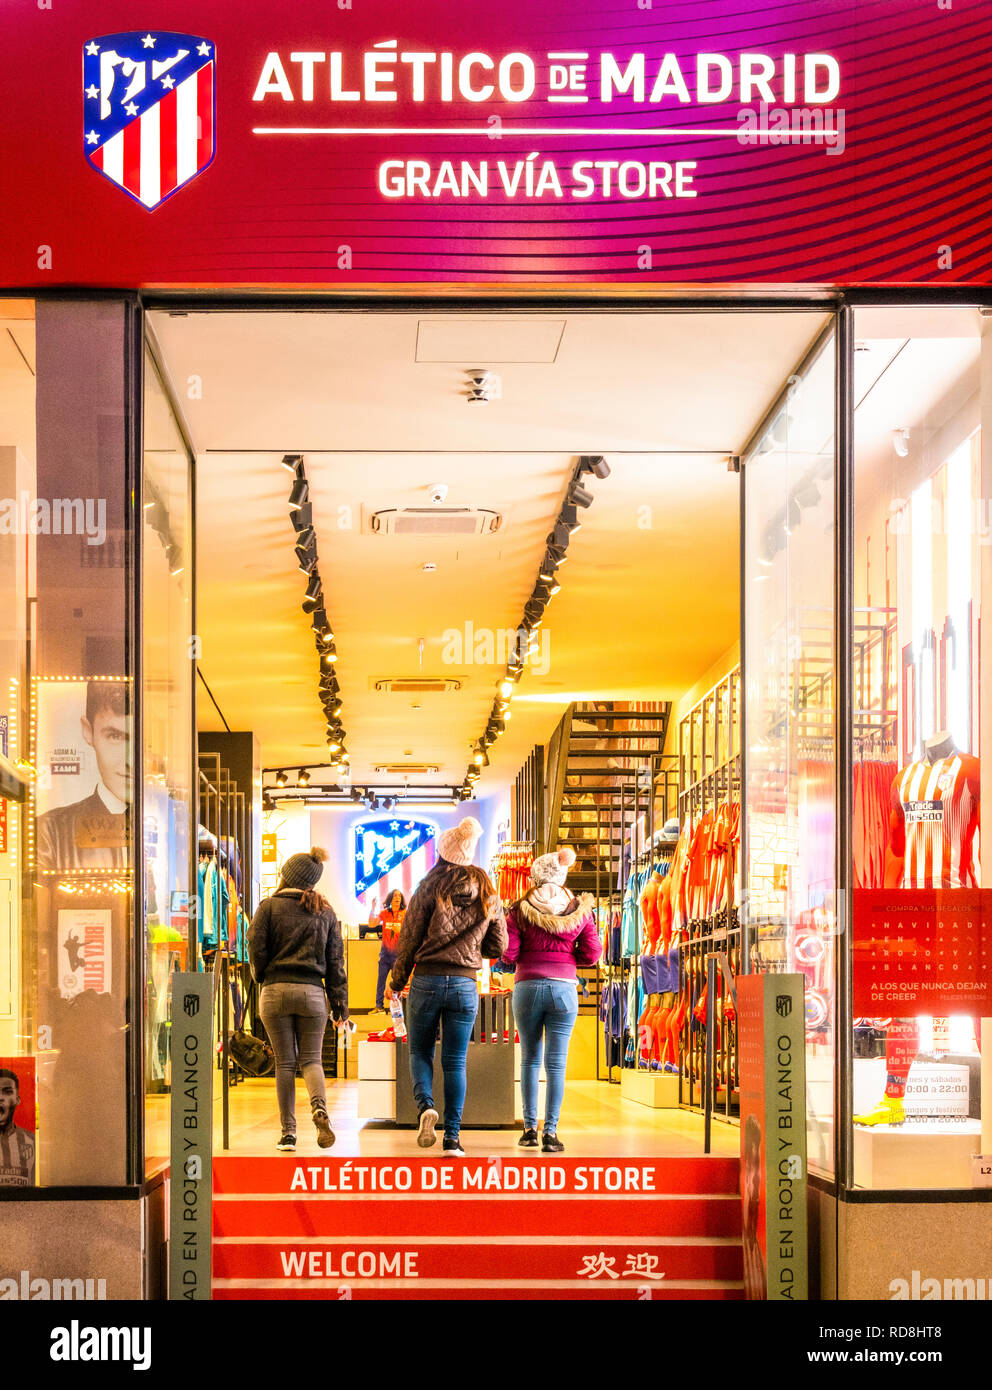 Atletico de Madrid official store on Gran Via shopping street. Three girls entering the official club shop of Atletico football club. - Stock Image